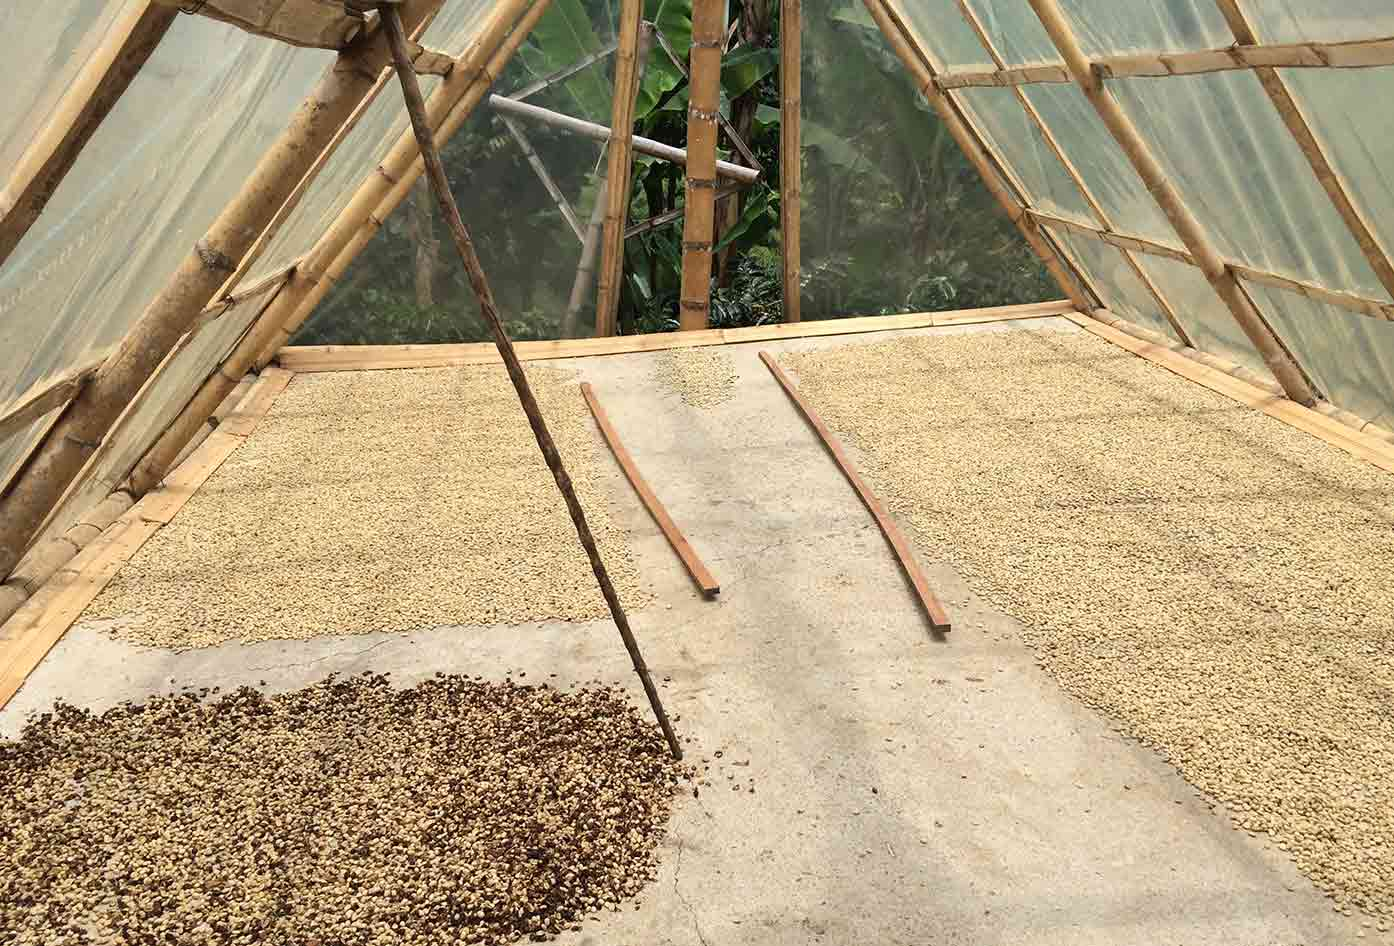 colombian coffee harvest